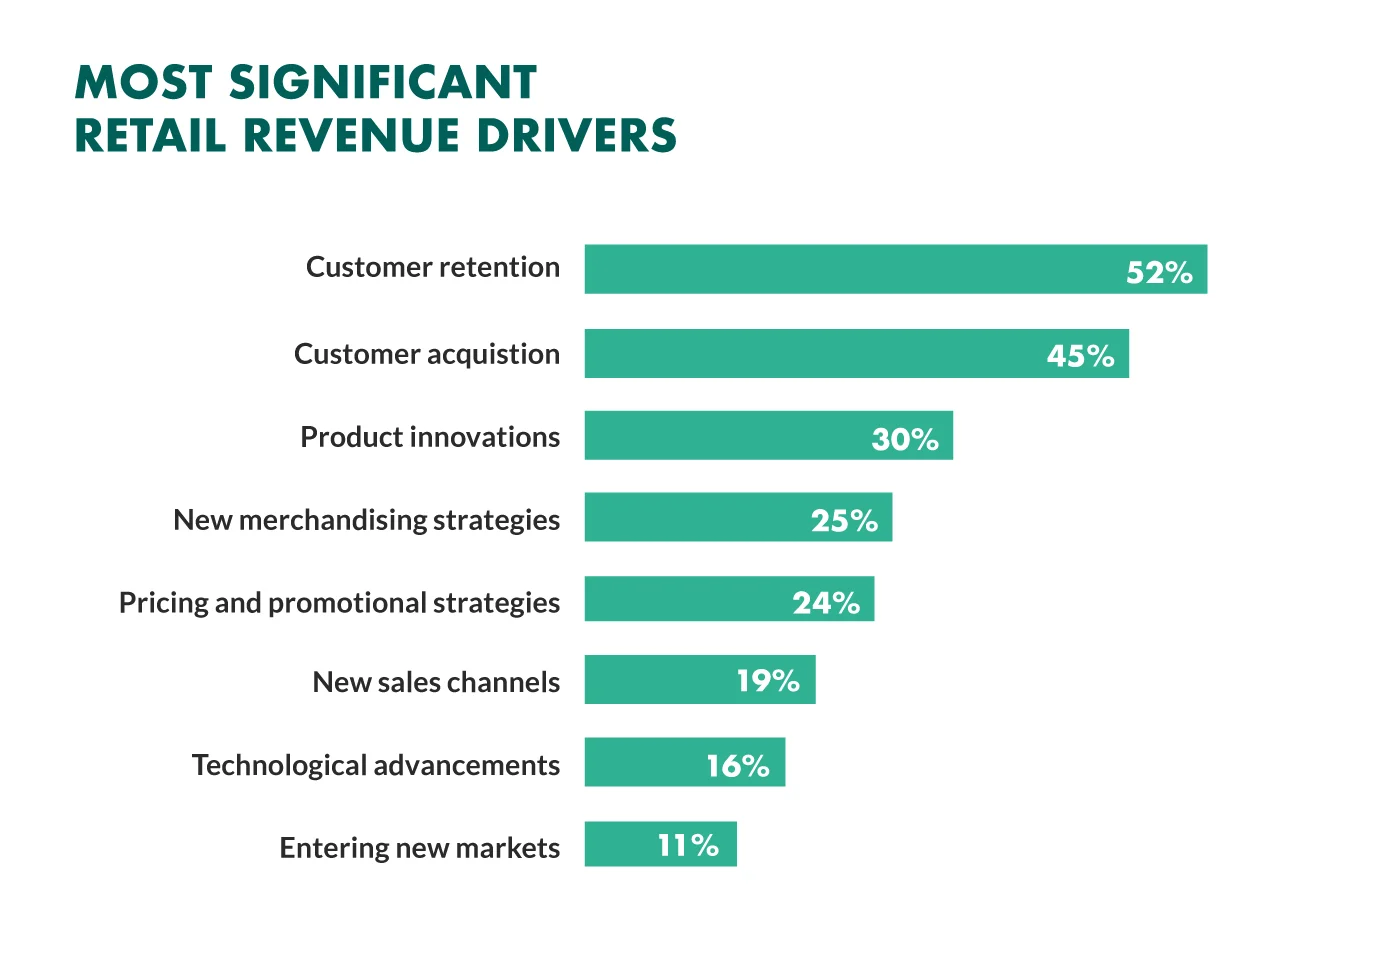 Retaining customers can help reduce churn rate